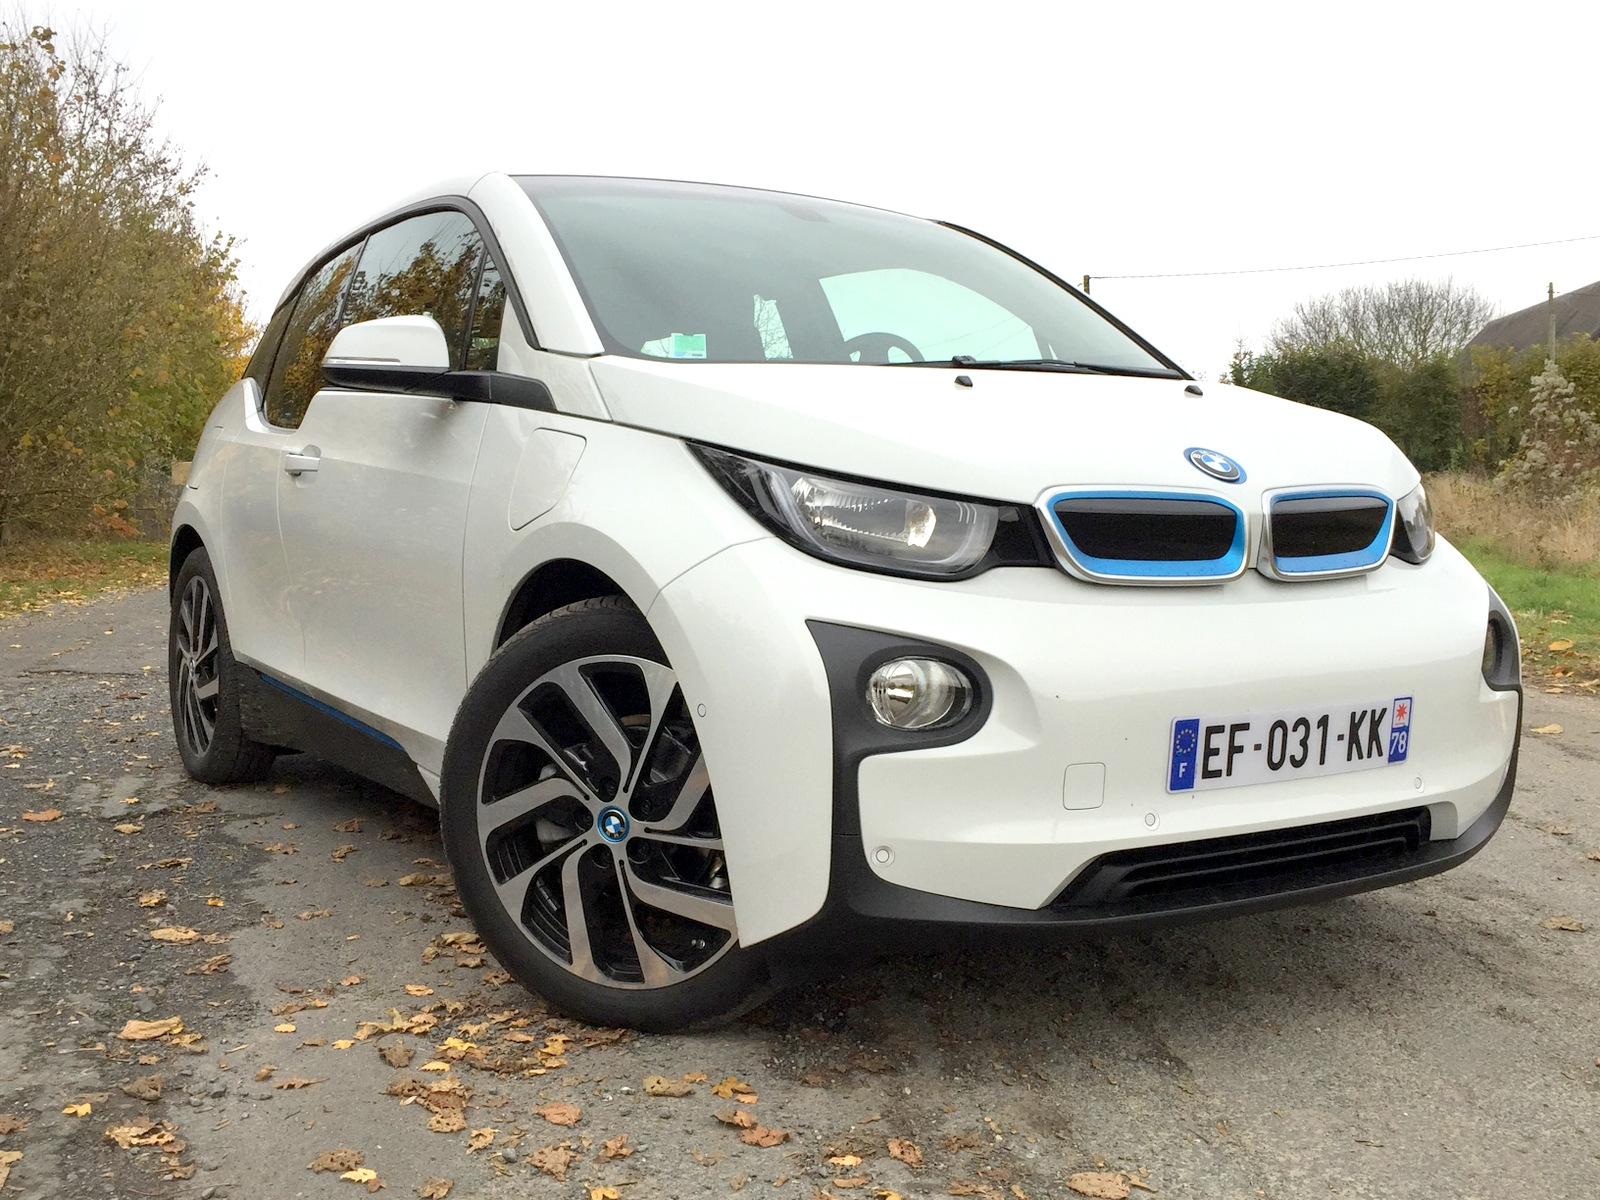 essai bmw i3 94 ah la ville comme aux champs. Black Bedroom Furniture Sets. Home Design Ideas